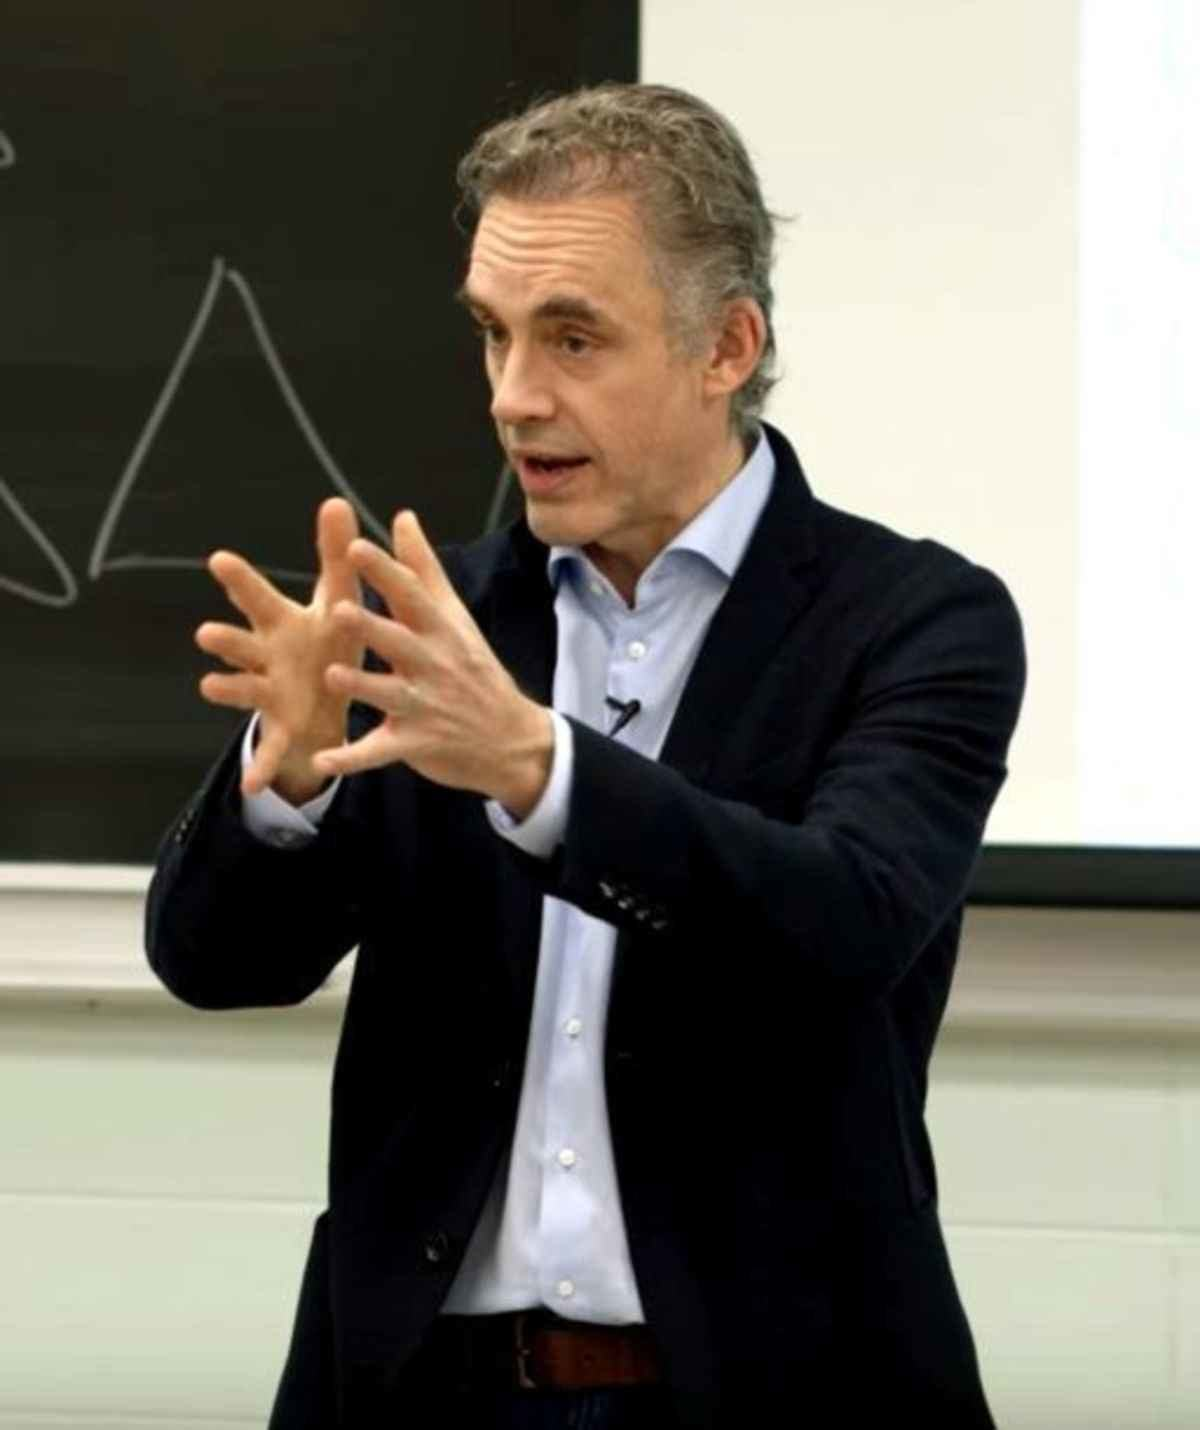 *** Jordan Bernt Peterson (June 12 1962) - Canadian clinical psychologist and public intellectual professor of psychology the University of Toronto ***